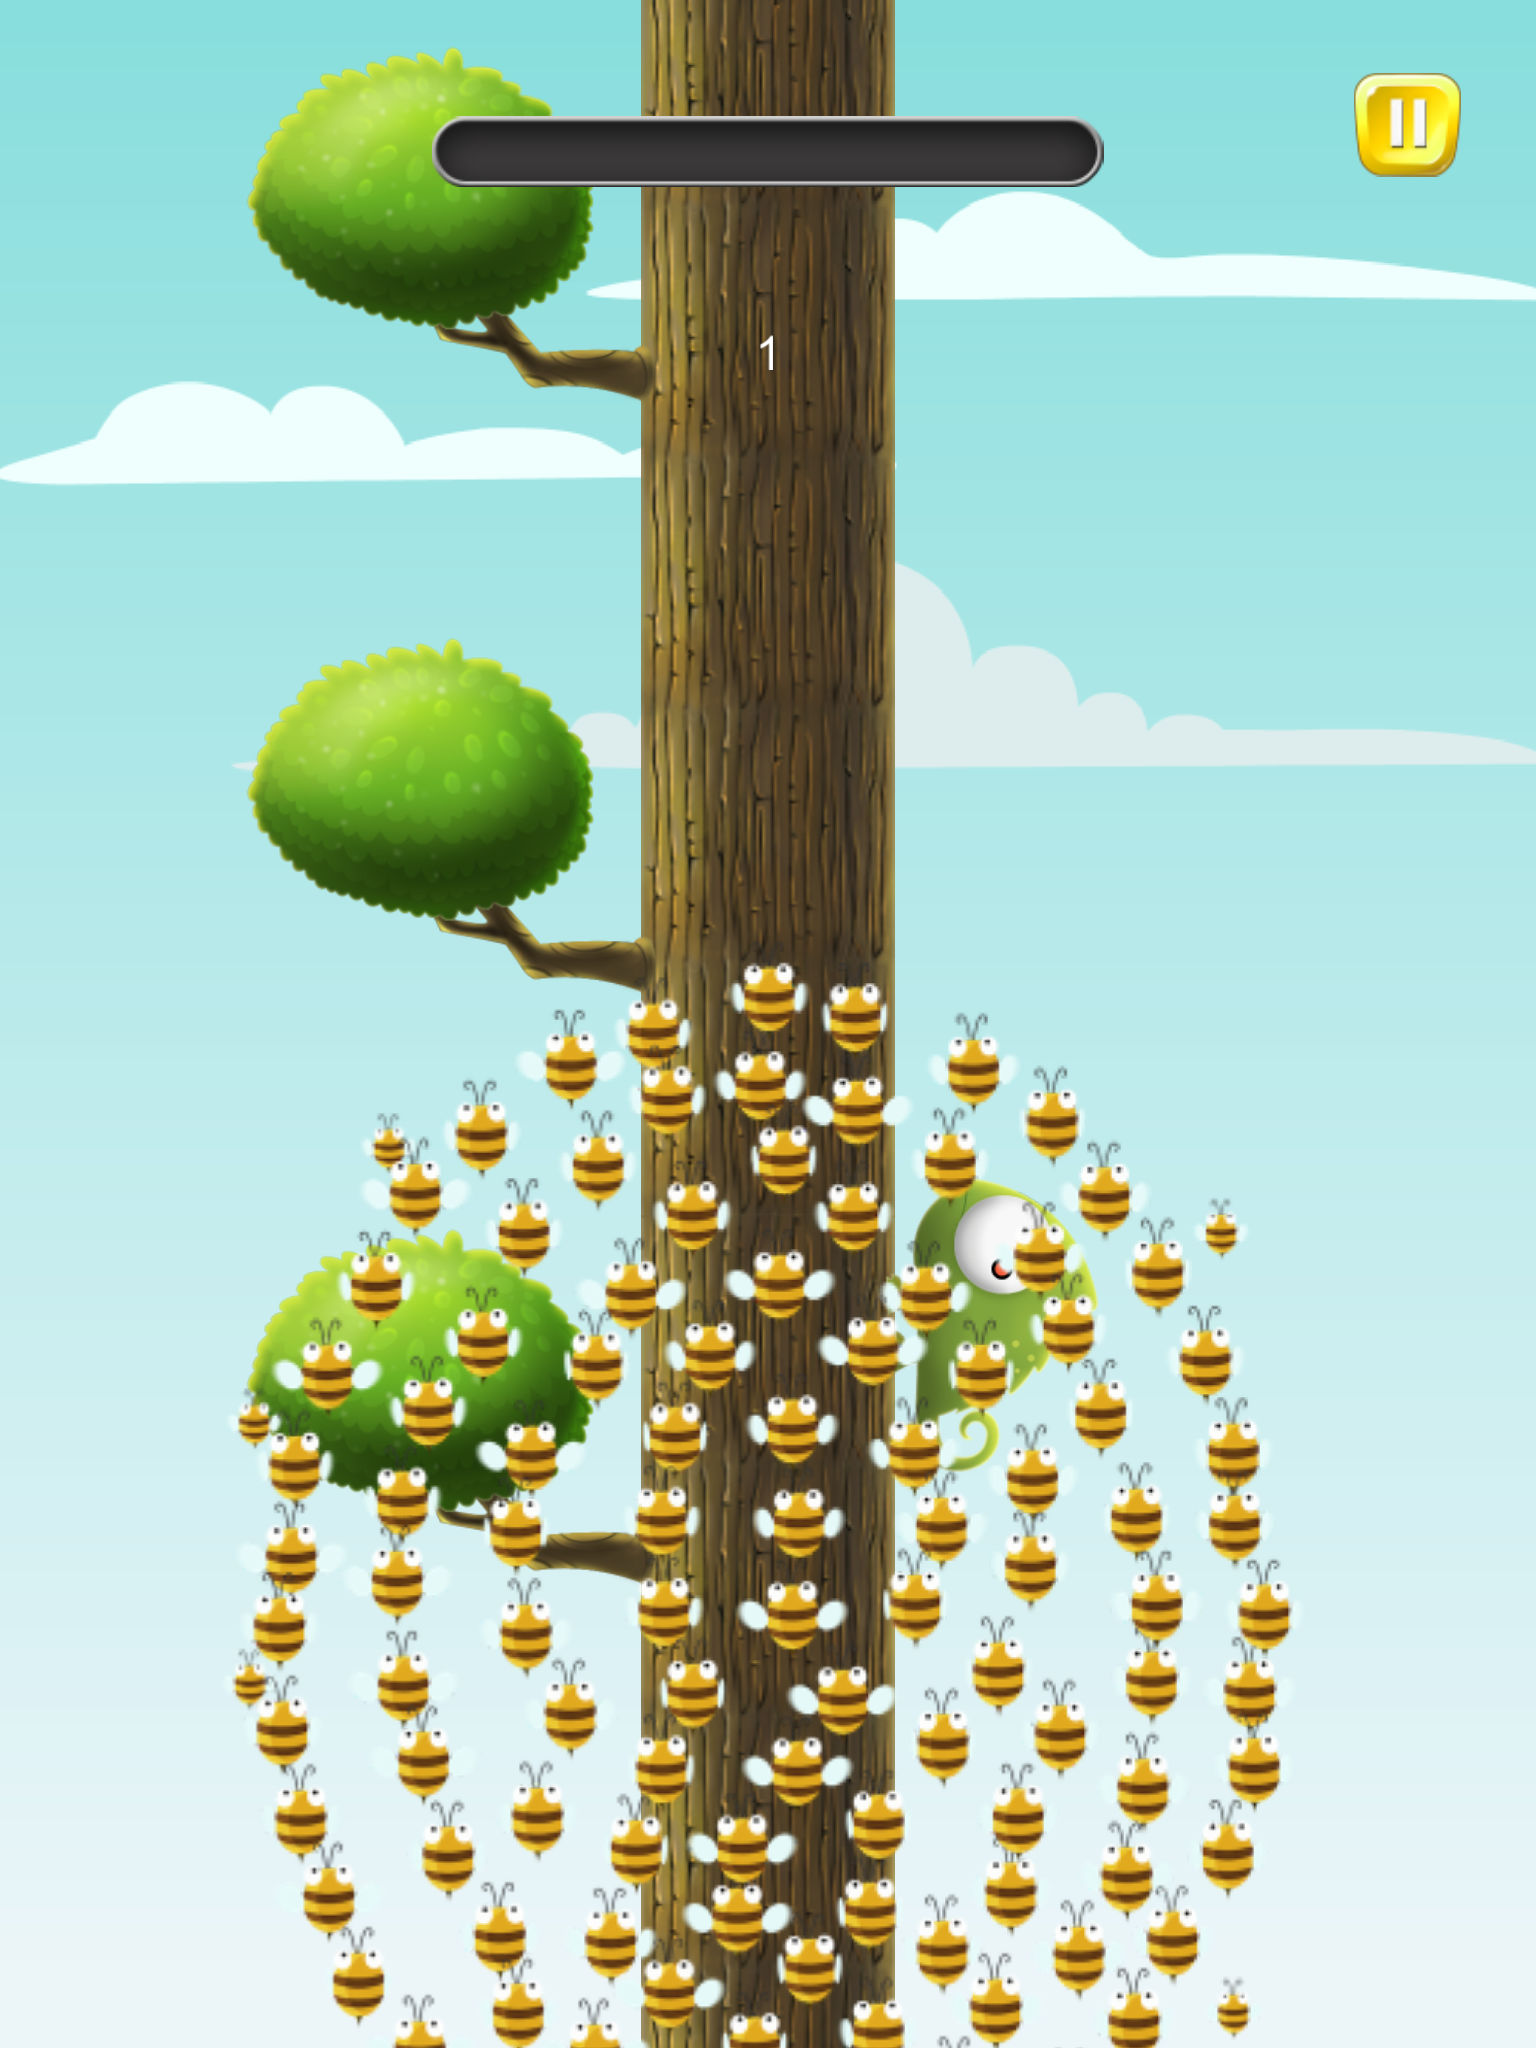 Tree Clamber, Avakai games, ios games, android games